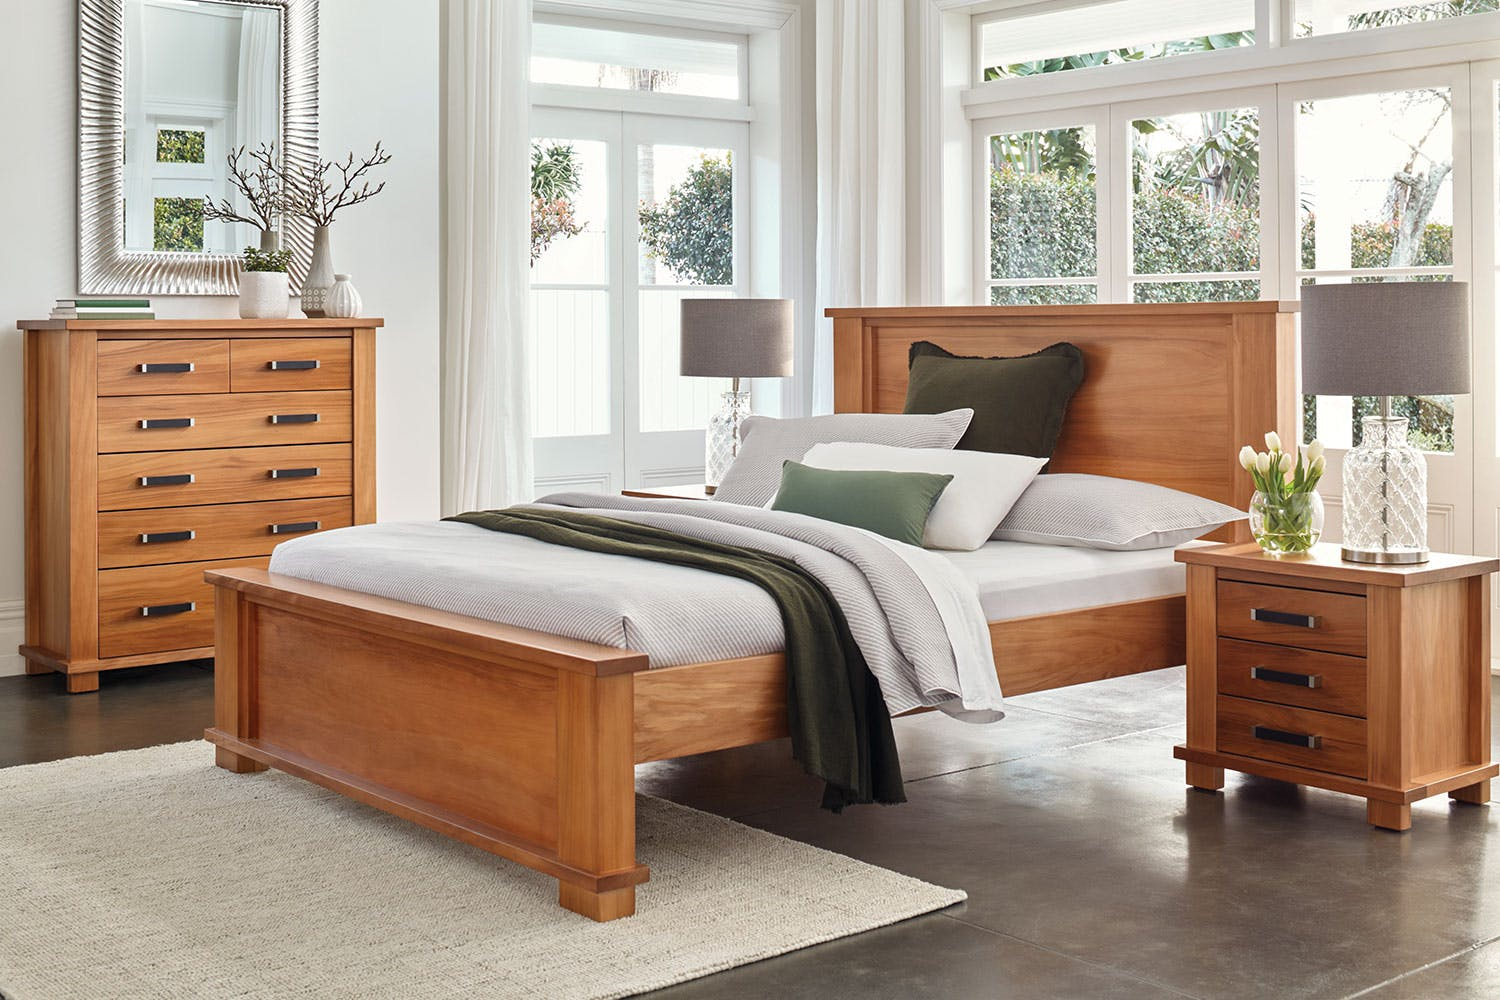 Huntsman Low Foot Queen Bed Frame By Ezirest Furniture Harvey Norman New Zealand